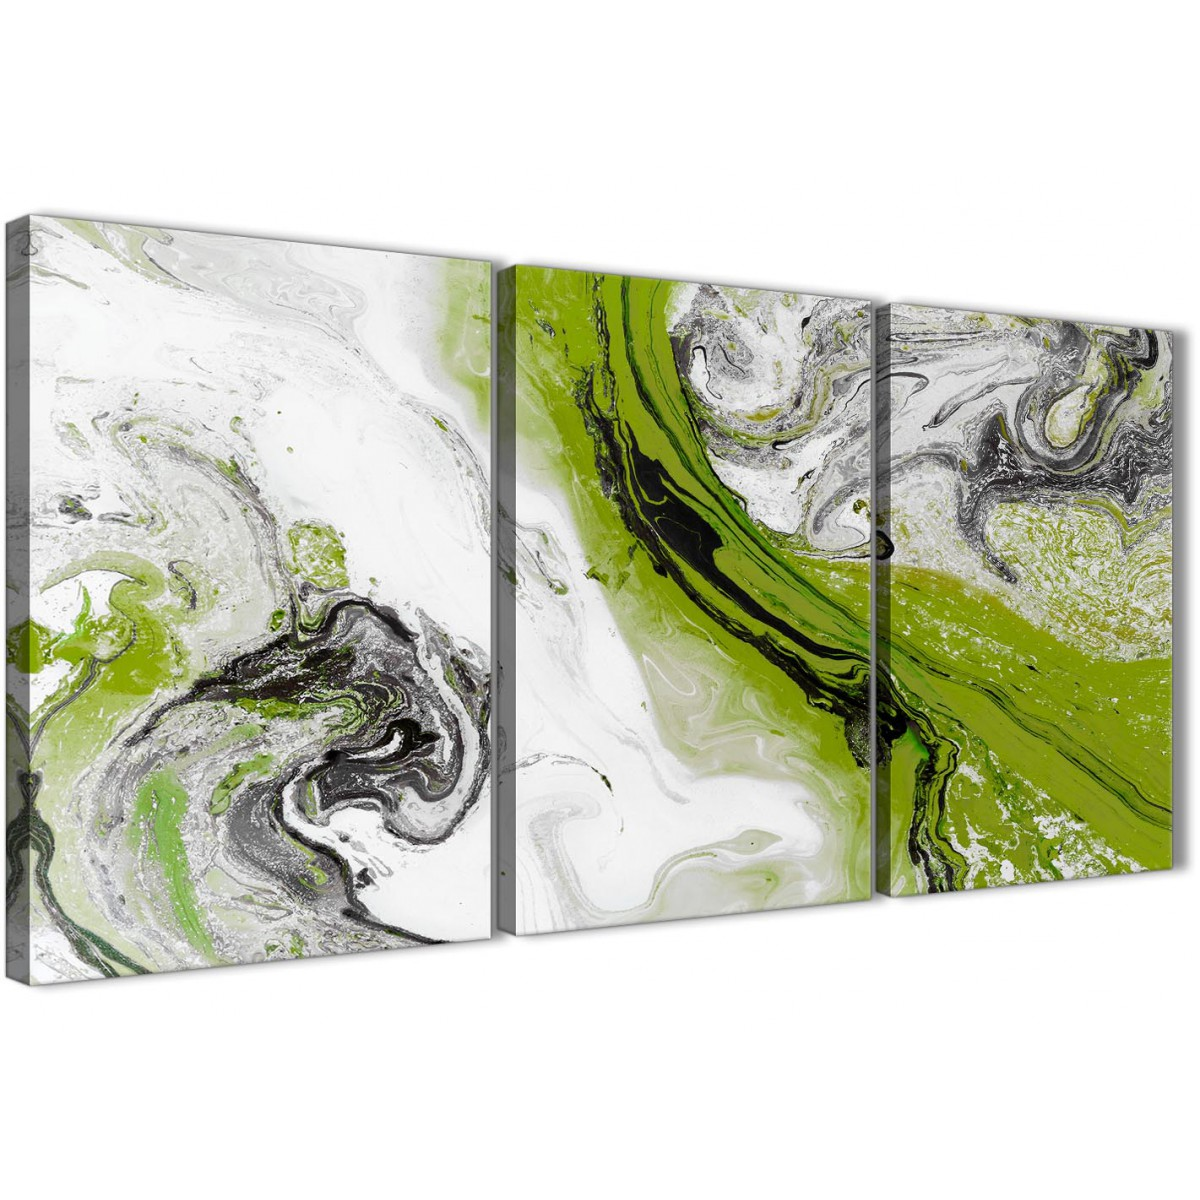 910e8df54e6 3 Panel Lime Green and Grey Swirl Living Room Canvas Wall Art Accessories -  Abstract 3464 - 126cm Set of Prints